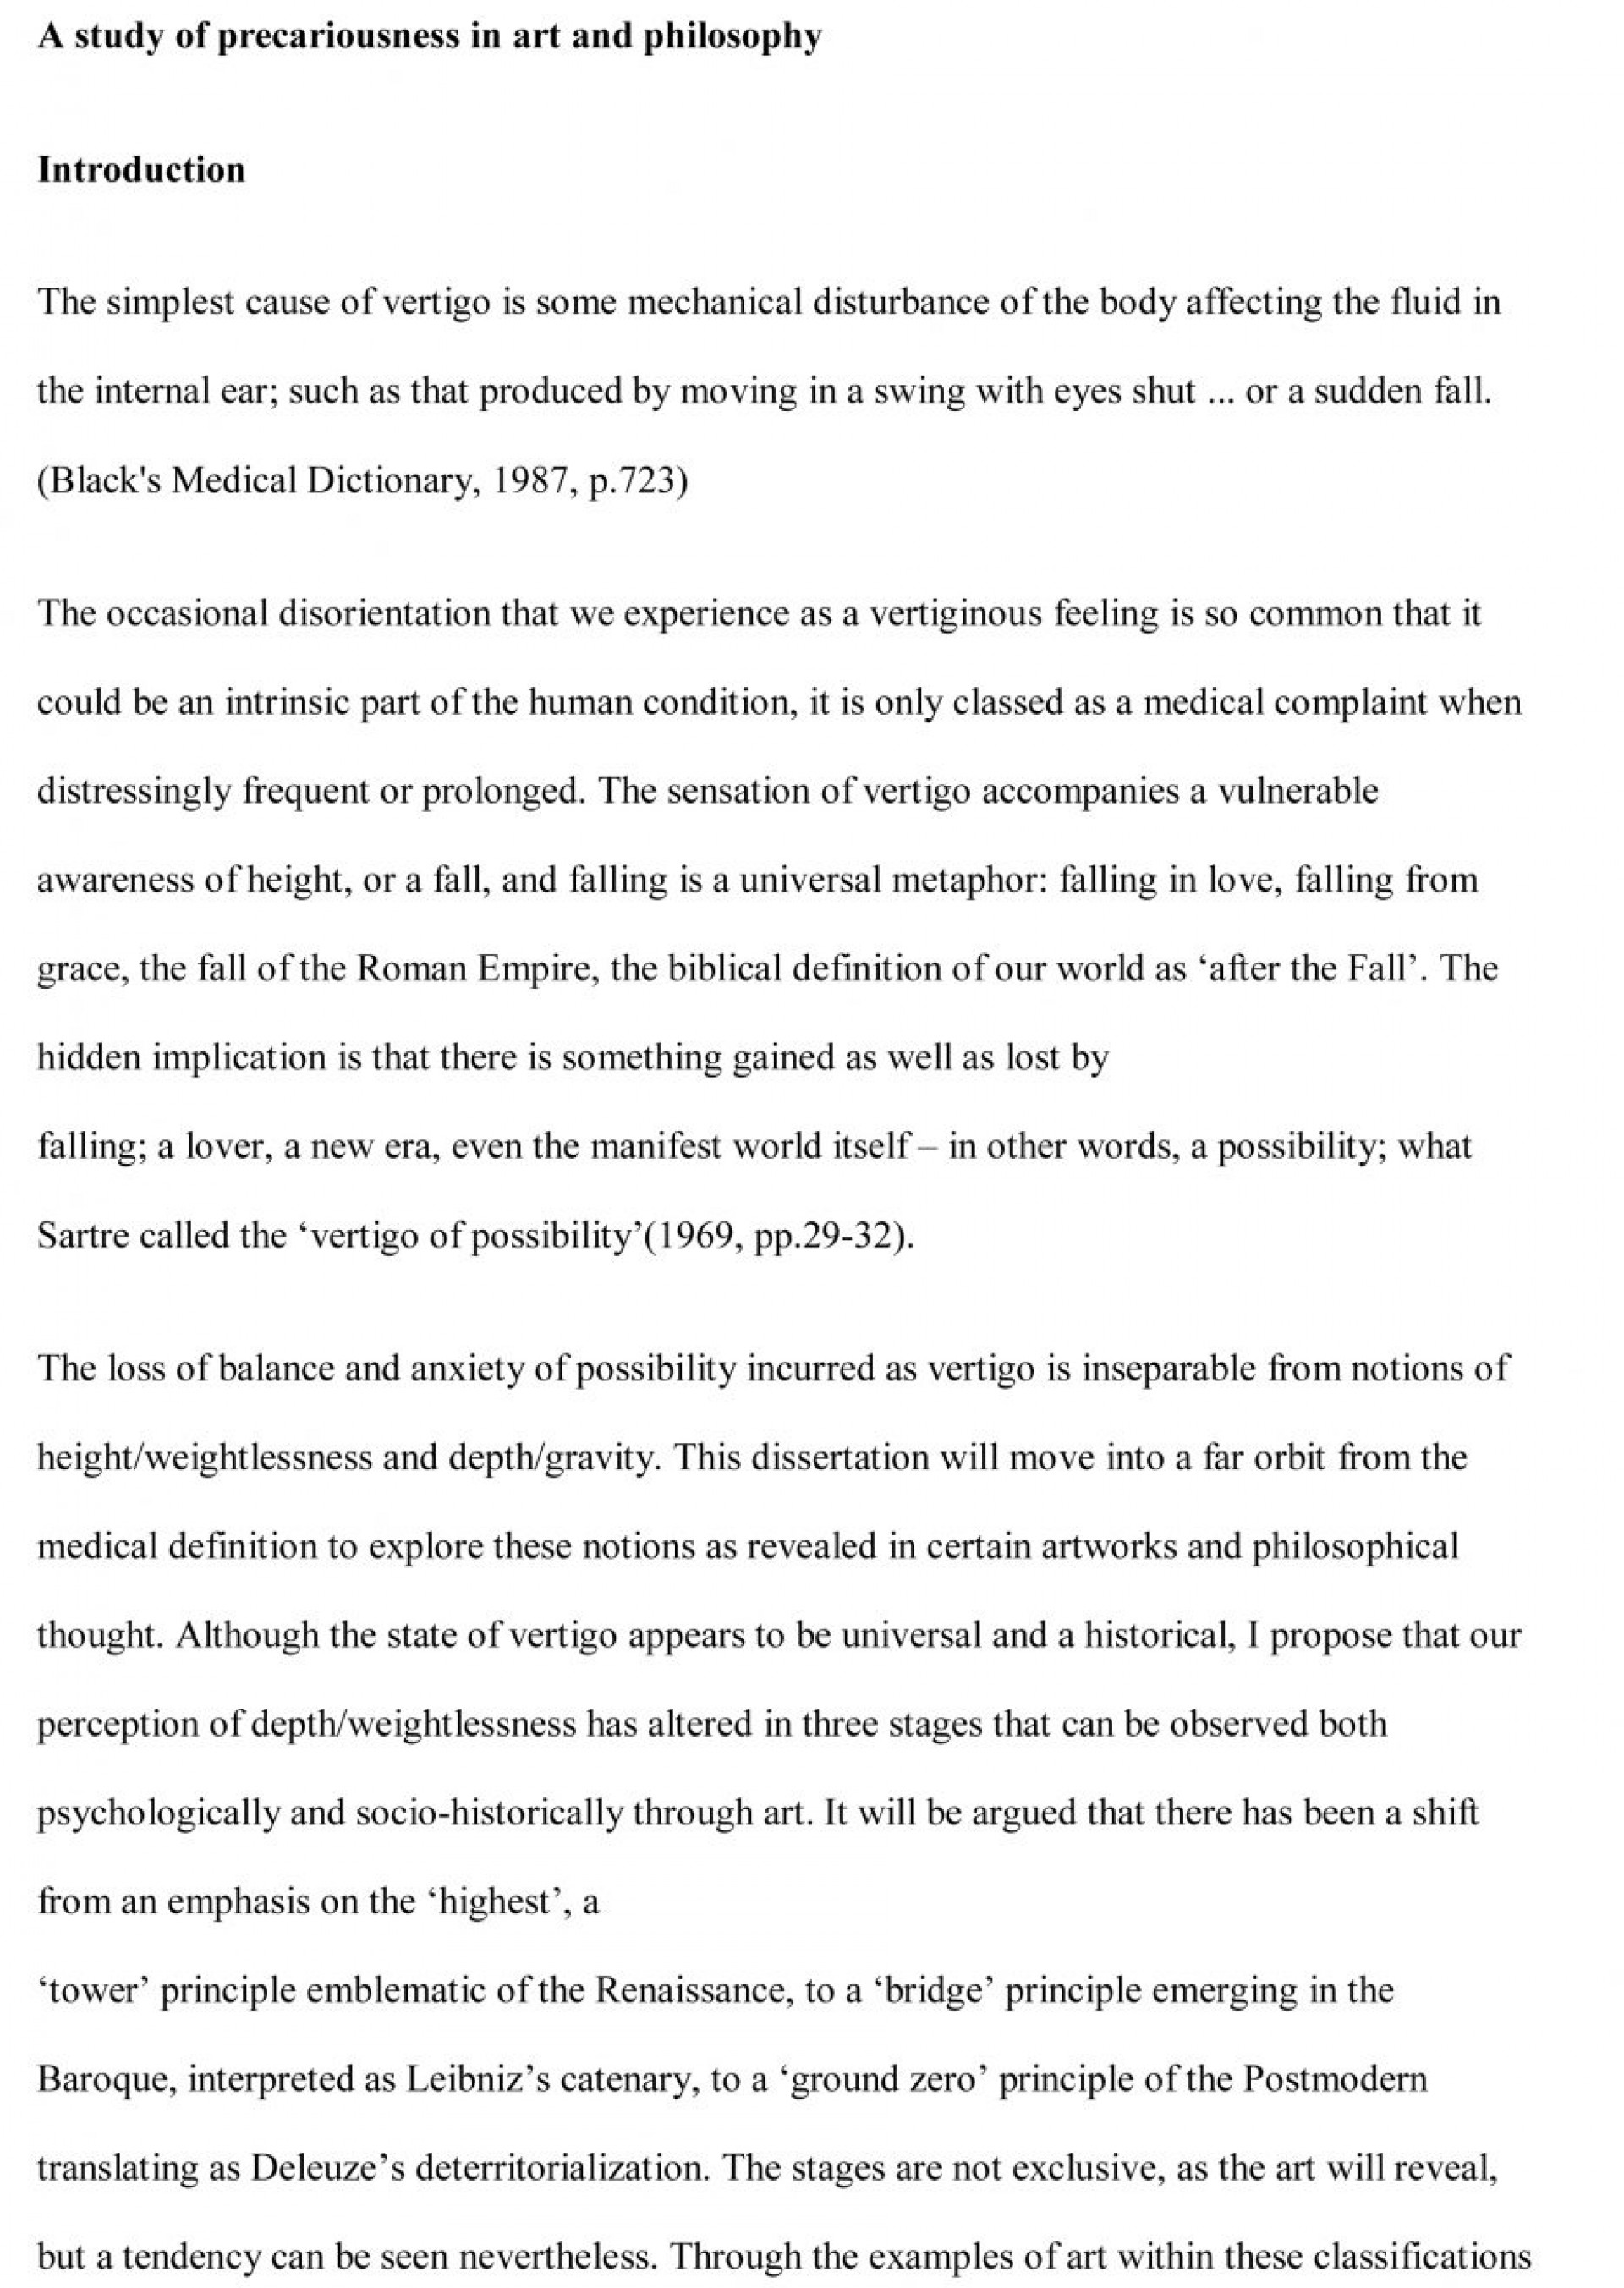 016 Hard Work Essay The Key Success Art Coursework Sample Essays On In Hindi Is To Wikipedia Pays Off Brings Students Life Always Role Of And Dedication 936x1319 Wonderful Urdu Example 1920